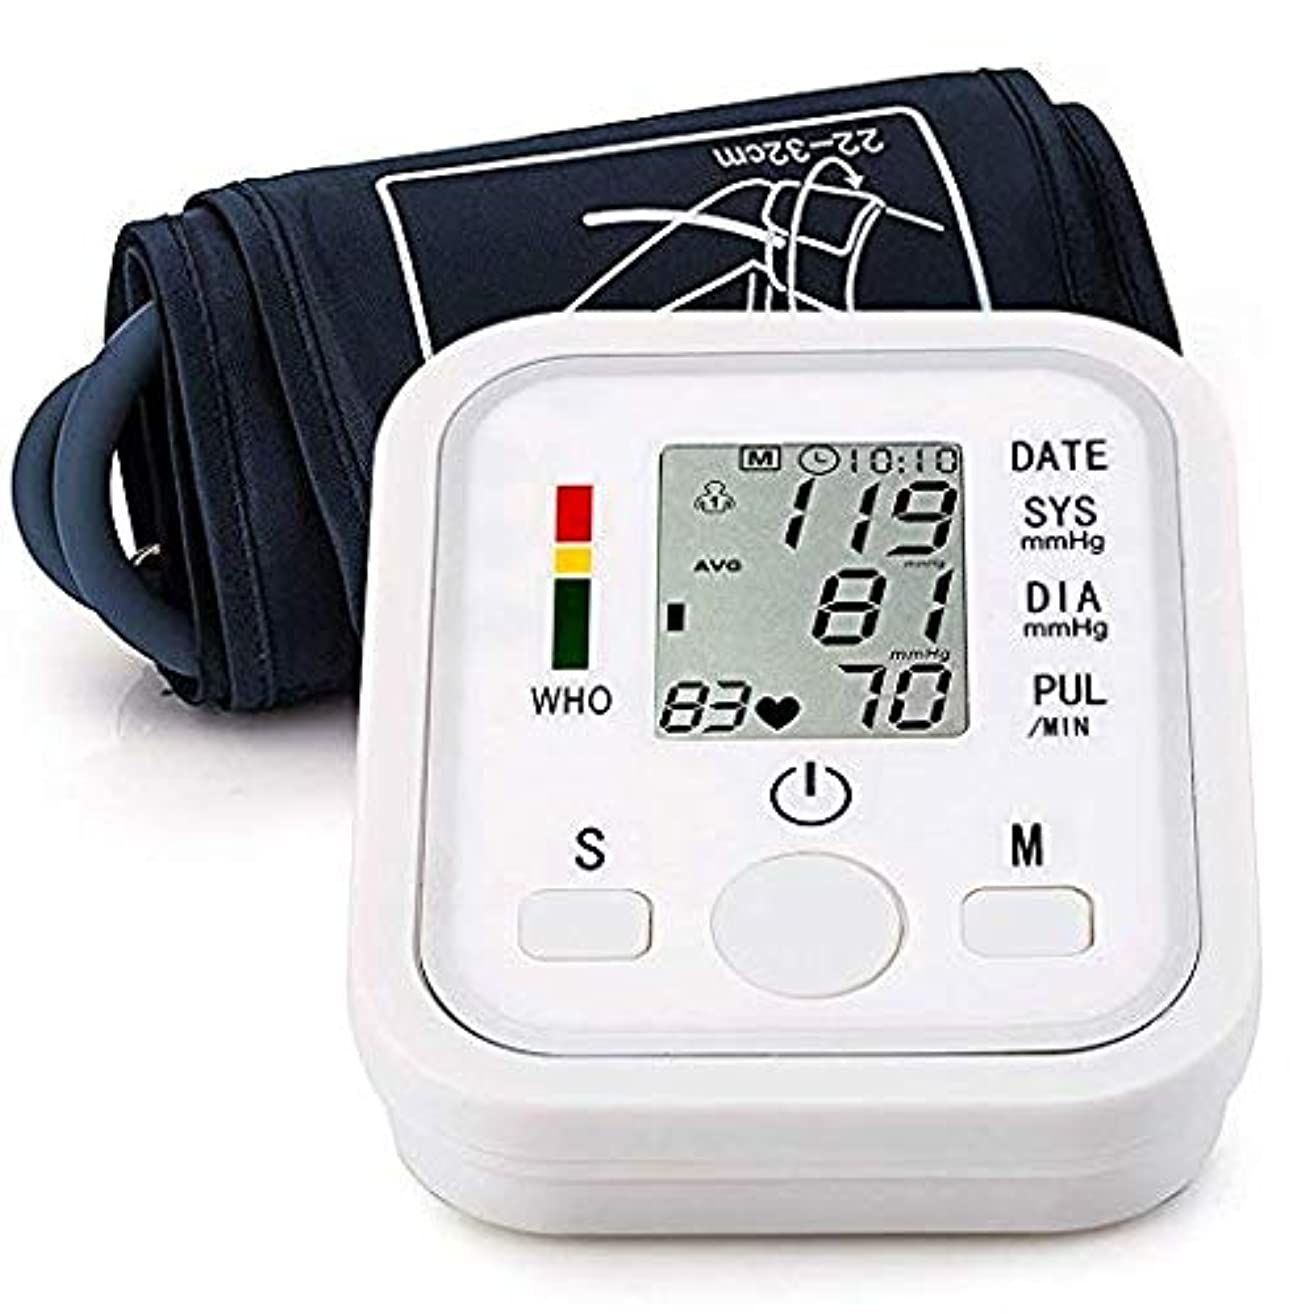 Automatic Arm Blood Pressure Monitor Voice Broadcast High Blood Pressure Monitors Portable LCD Screen Irregular Heartbeat Monitor with Adjustable 8.6-12.6Inch Cuff and Storage Bag Powered by Battery